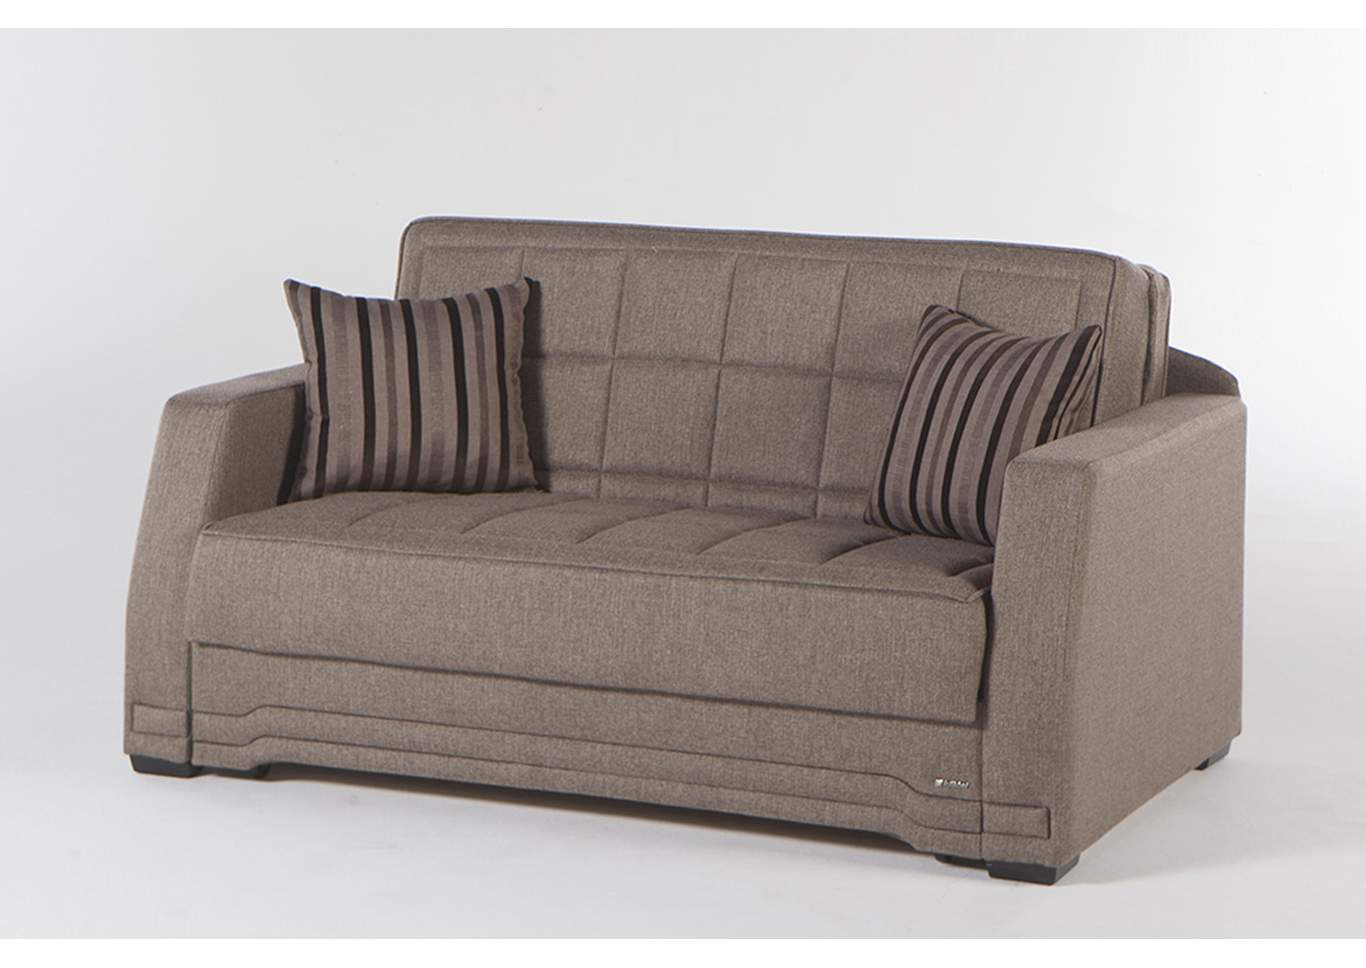 Valerie Redeyef Brown Love Seat W/ Storage,Hudson Furniture & Bedding